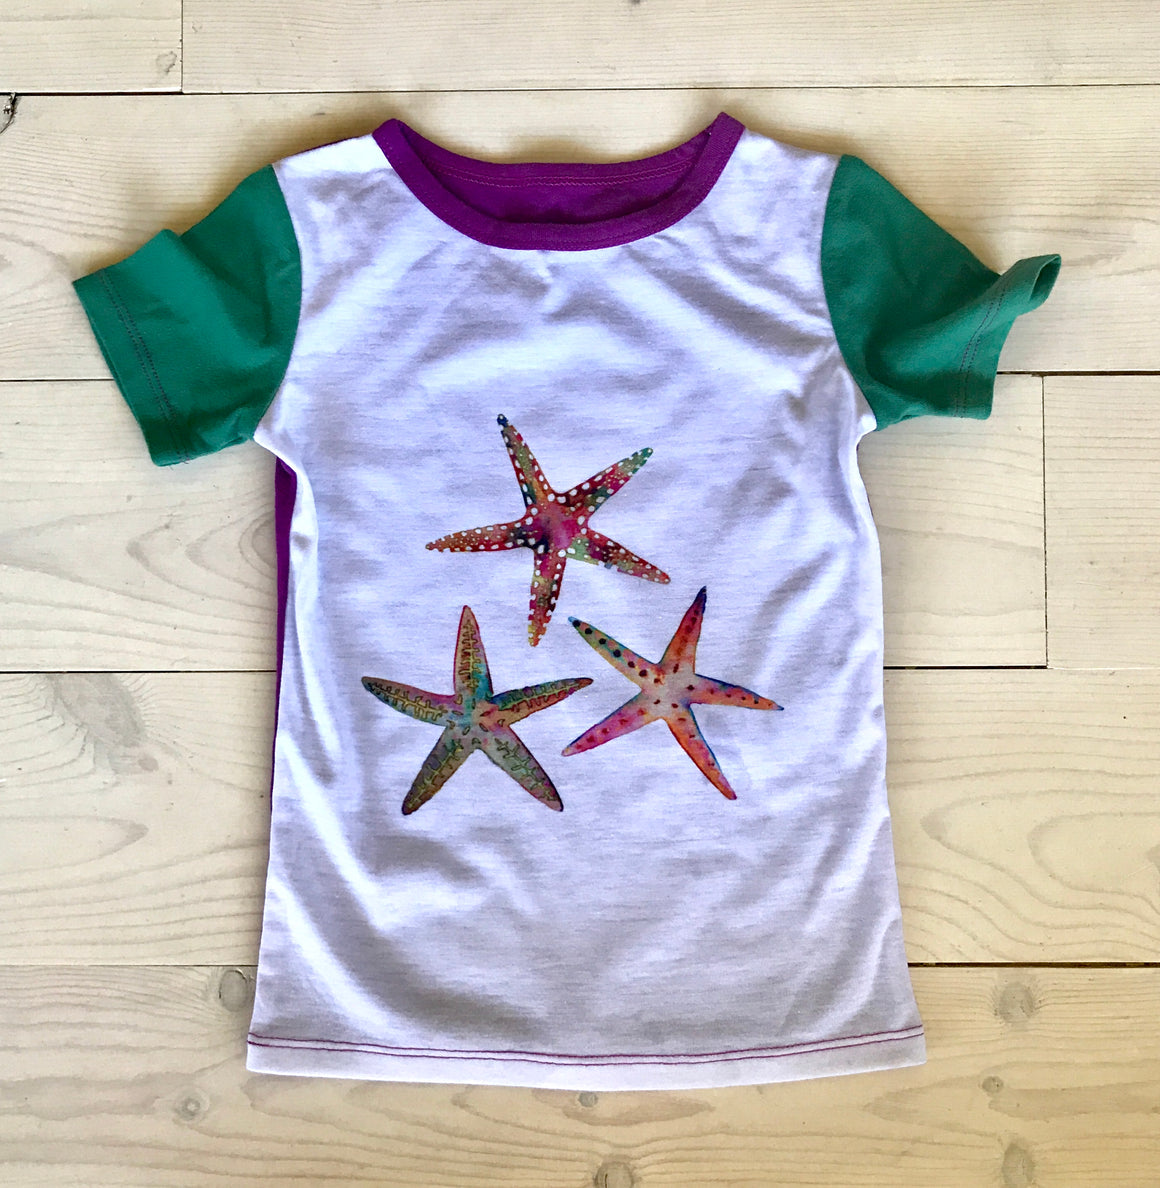 ASPYN TEE - Starfish - Spring 16' Sample - Size 3